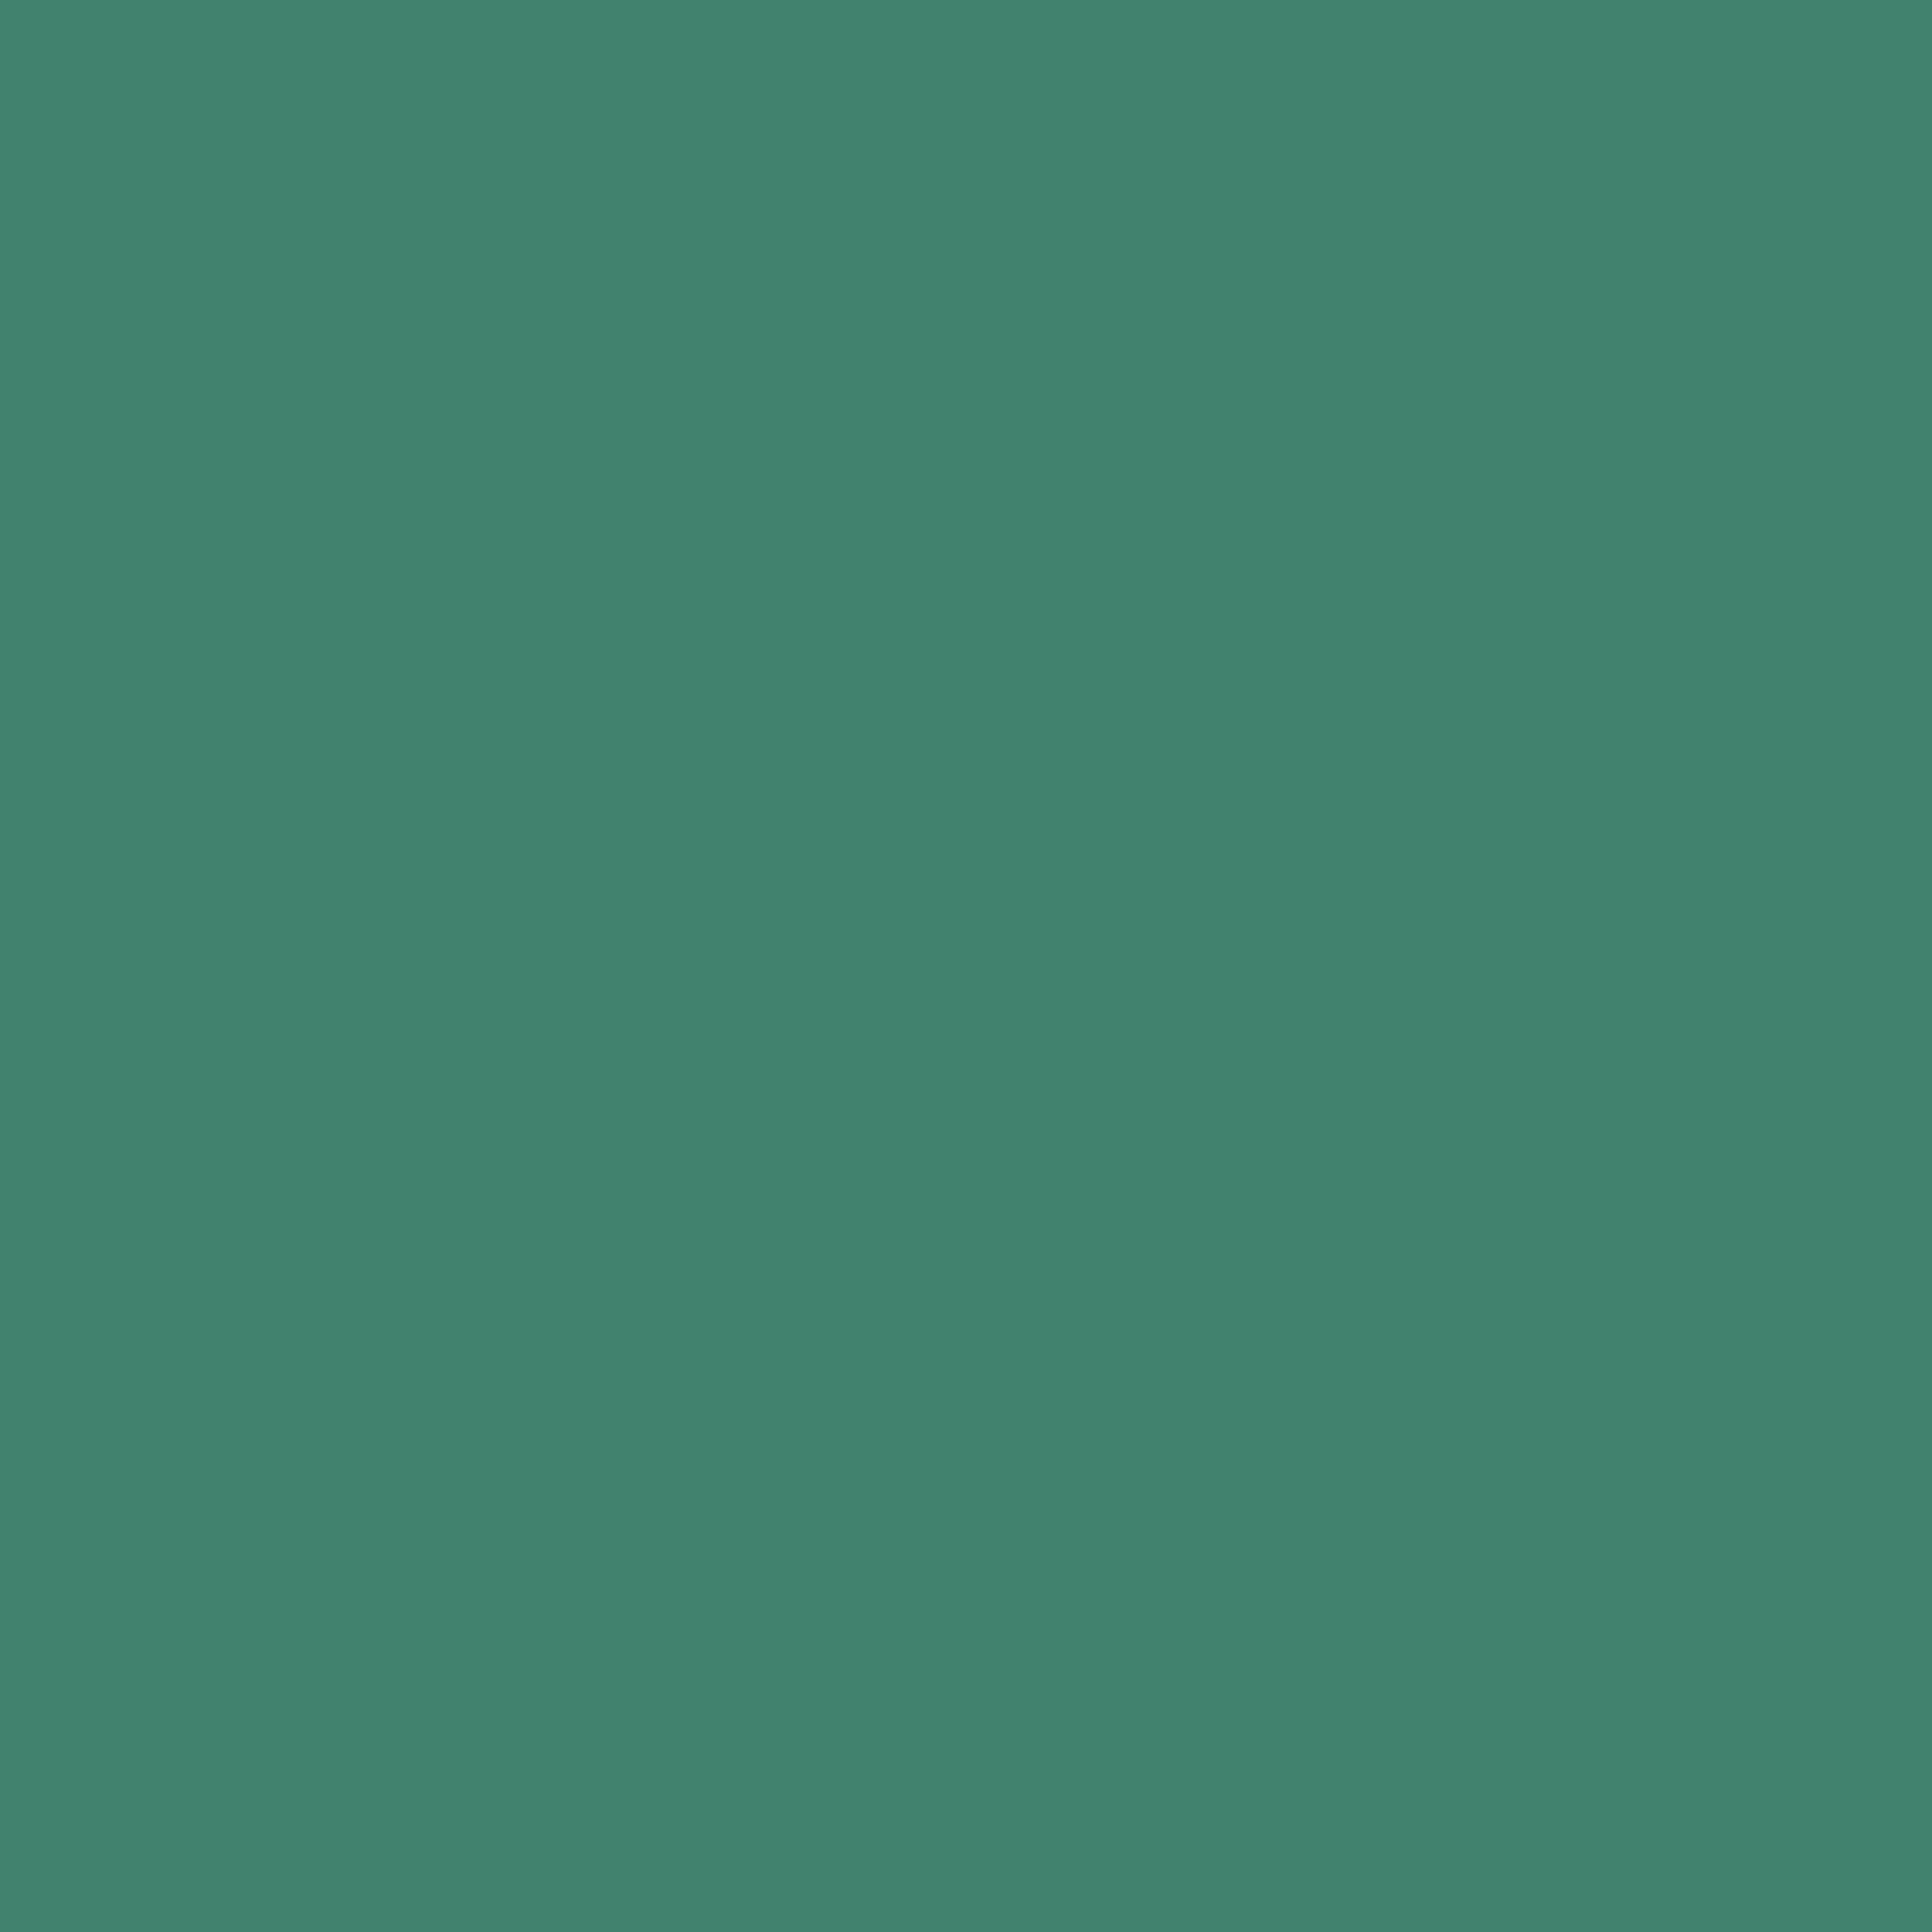 2048x2048 Viridian Solid Color Background